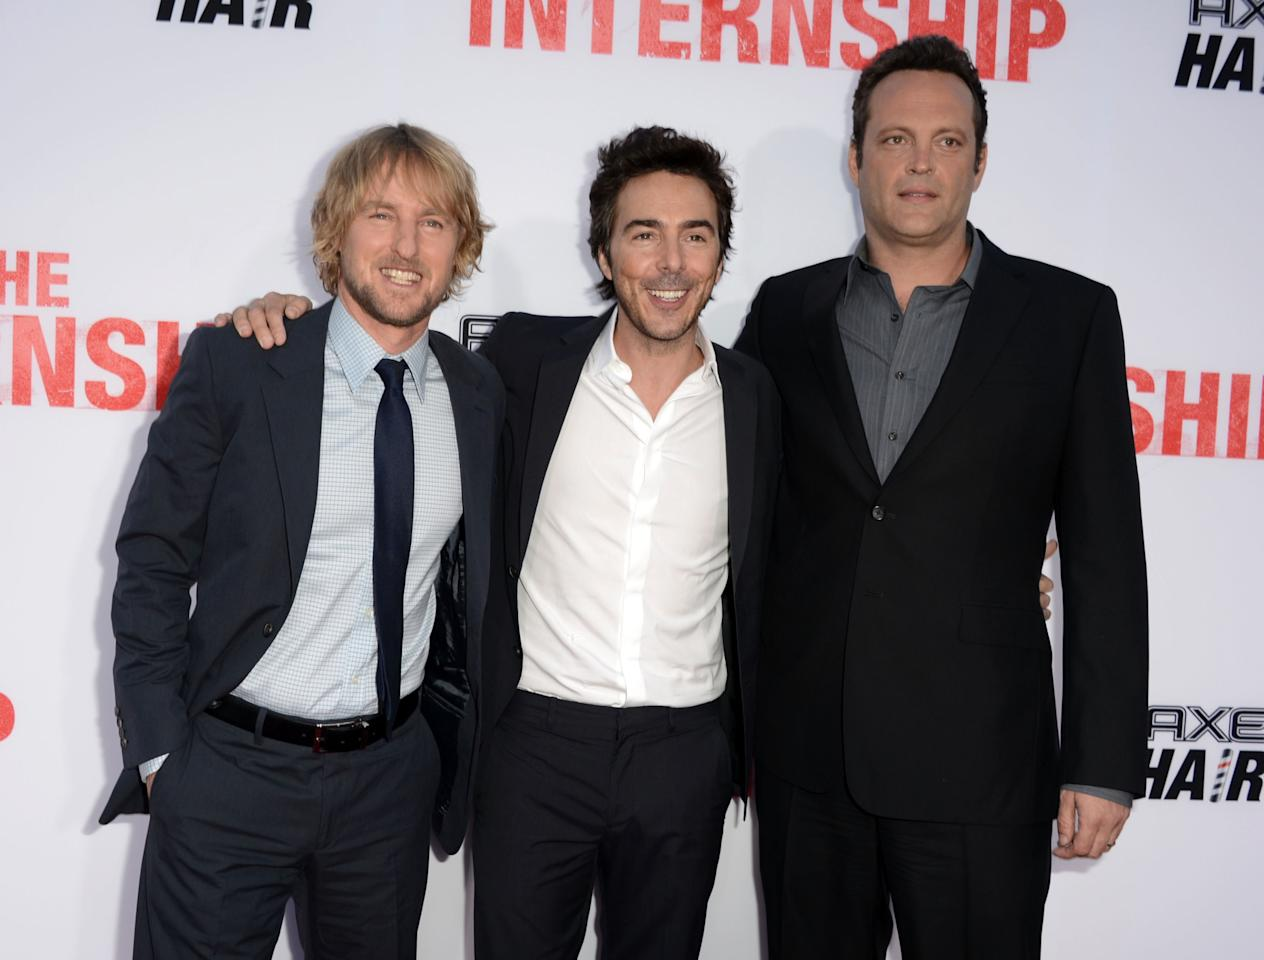 "WESTWOOD, CA - MAY 29: Actor Owen Wilson (L) director Shawn Levy, and writer/actor Vince Vaughn arrive at the premiere of Twentieth Century Fox's ""The Internship"" at Regency Village Theatre on May 29, 2013 in Westwood, California. (Photo by Kevin Winter/Getty Images)"